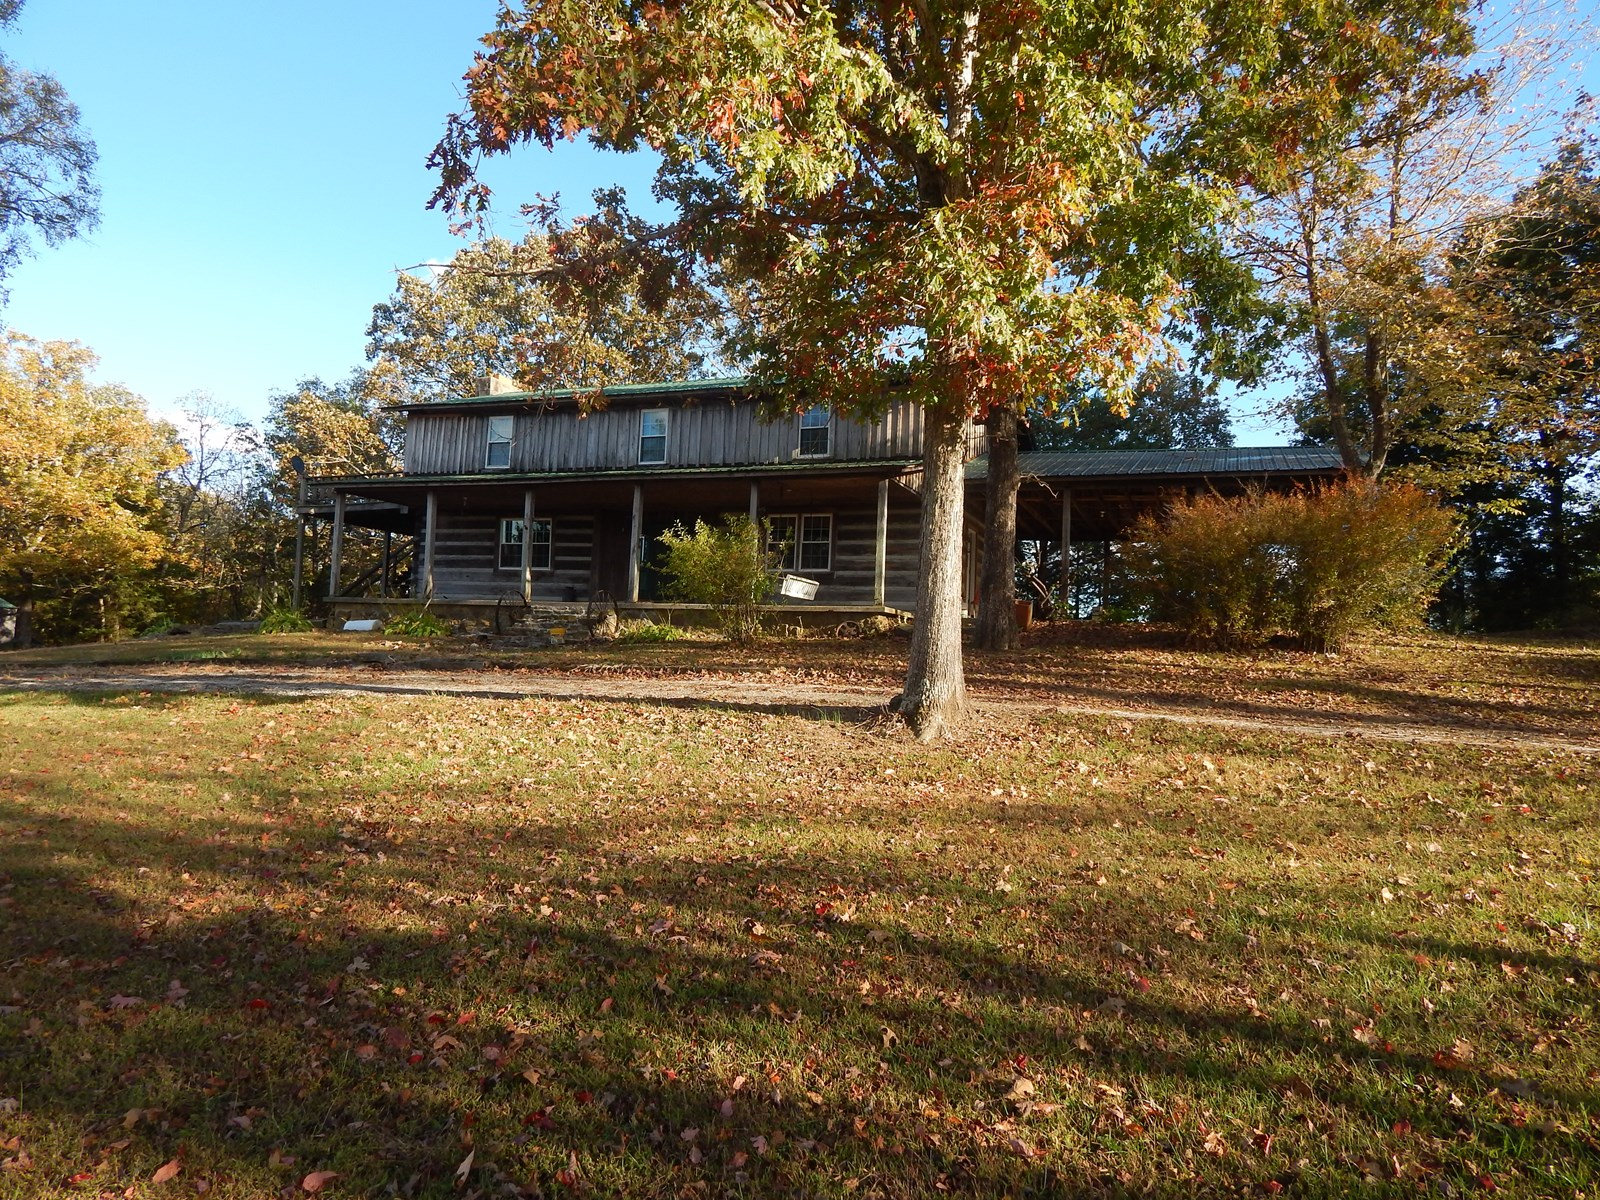 RUSTIC HOME ON APPROXIMATELY 4 ACRES